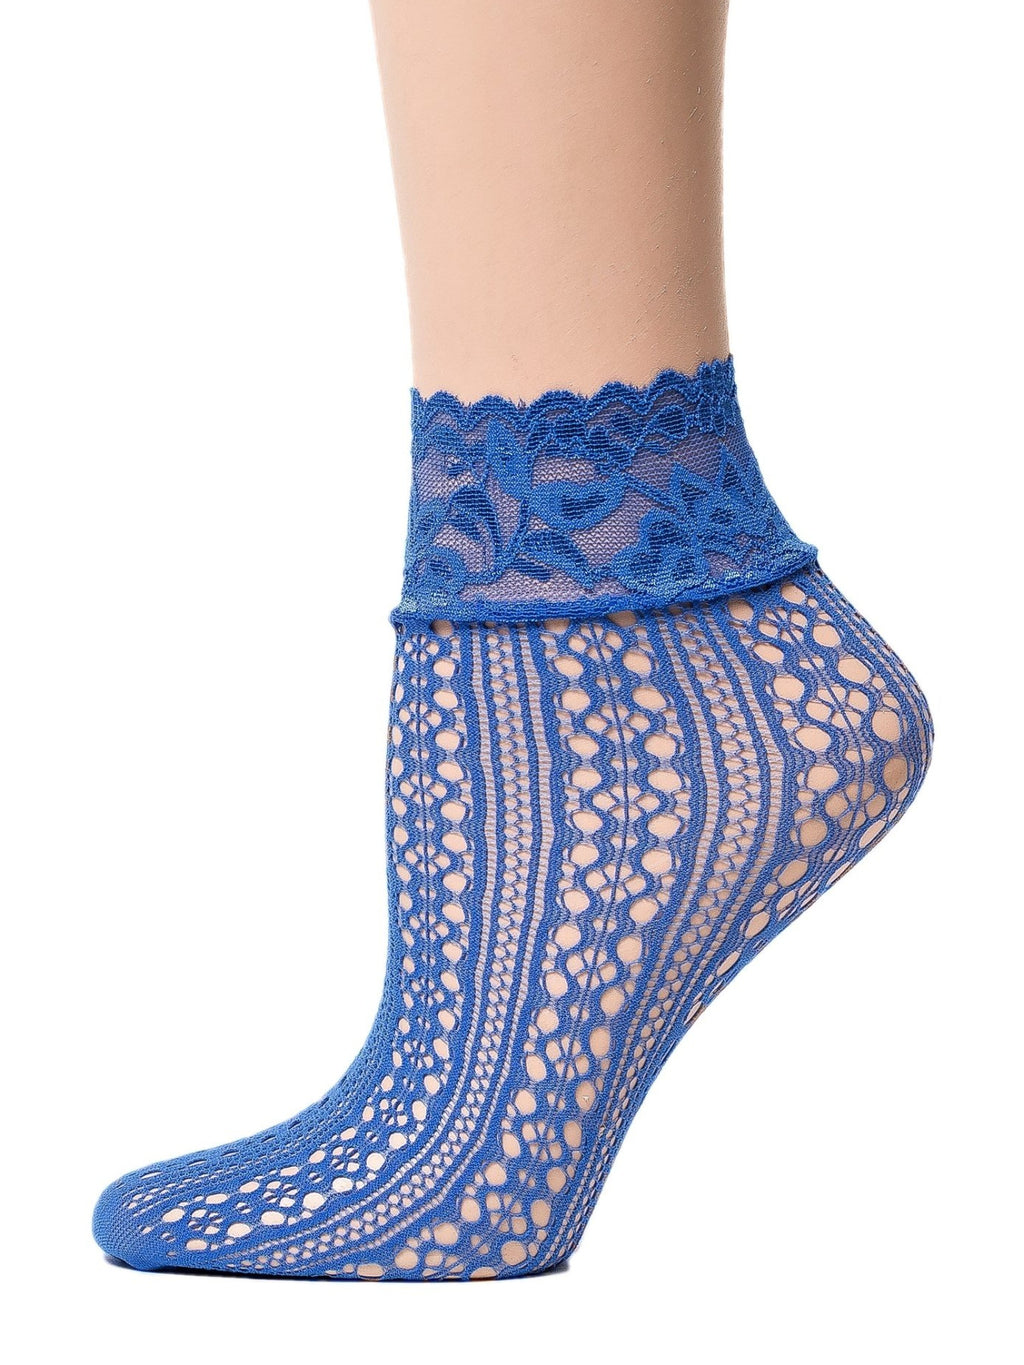 Posh Blue Mesh Socks - Global Trendz Fashion®